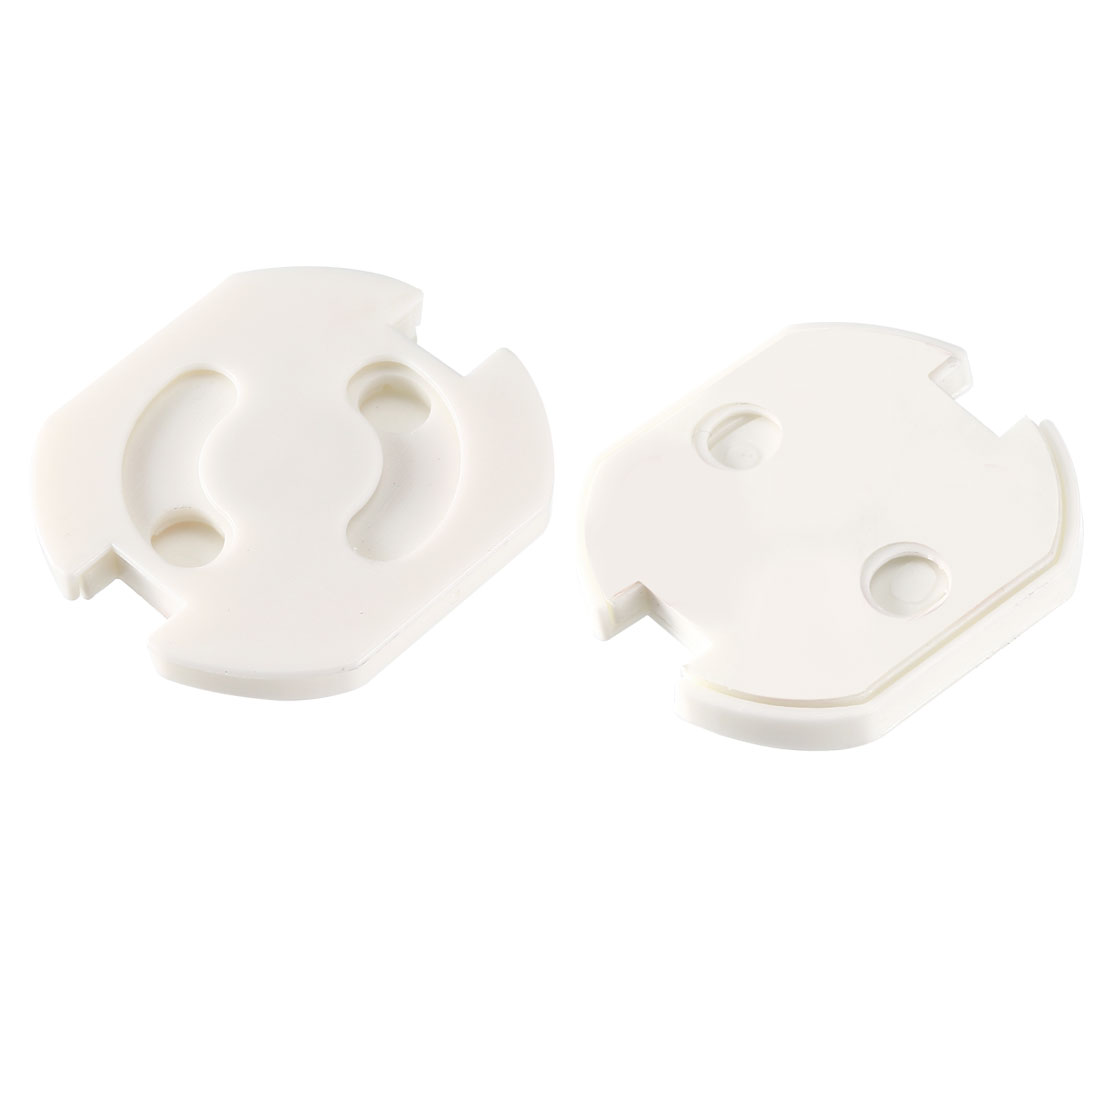 EU Standard Power Socket Covers Electrical Protective Proof Self-adhesive 10 Pcs